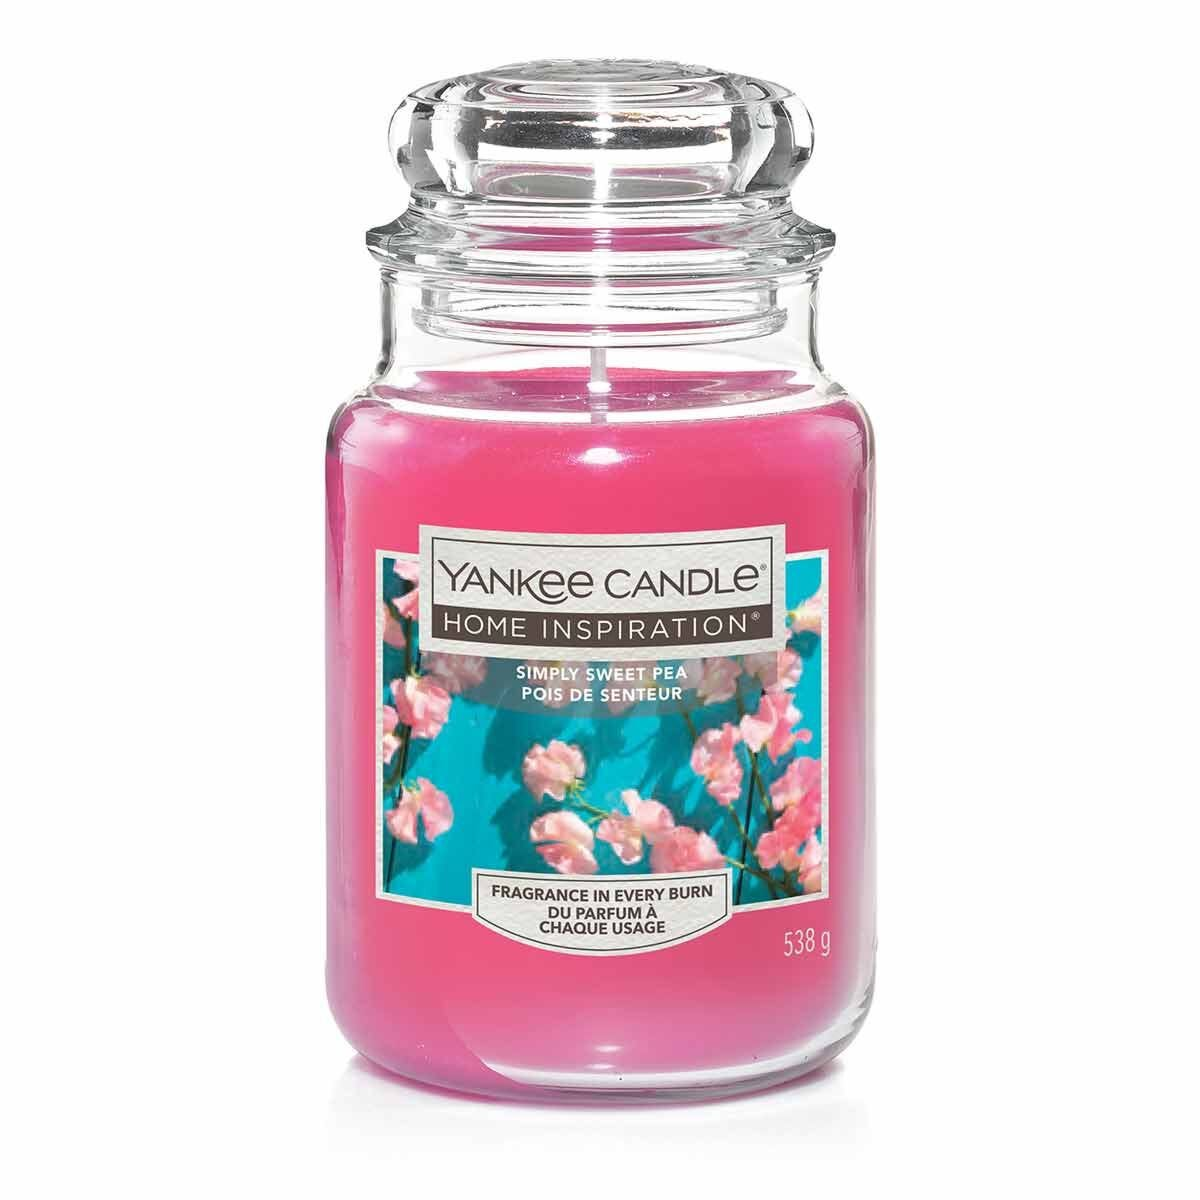 Yankee Candle Home Inspiration Large Jar Simply Sweet Pea